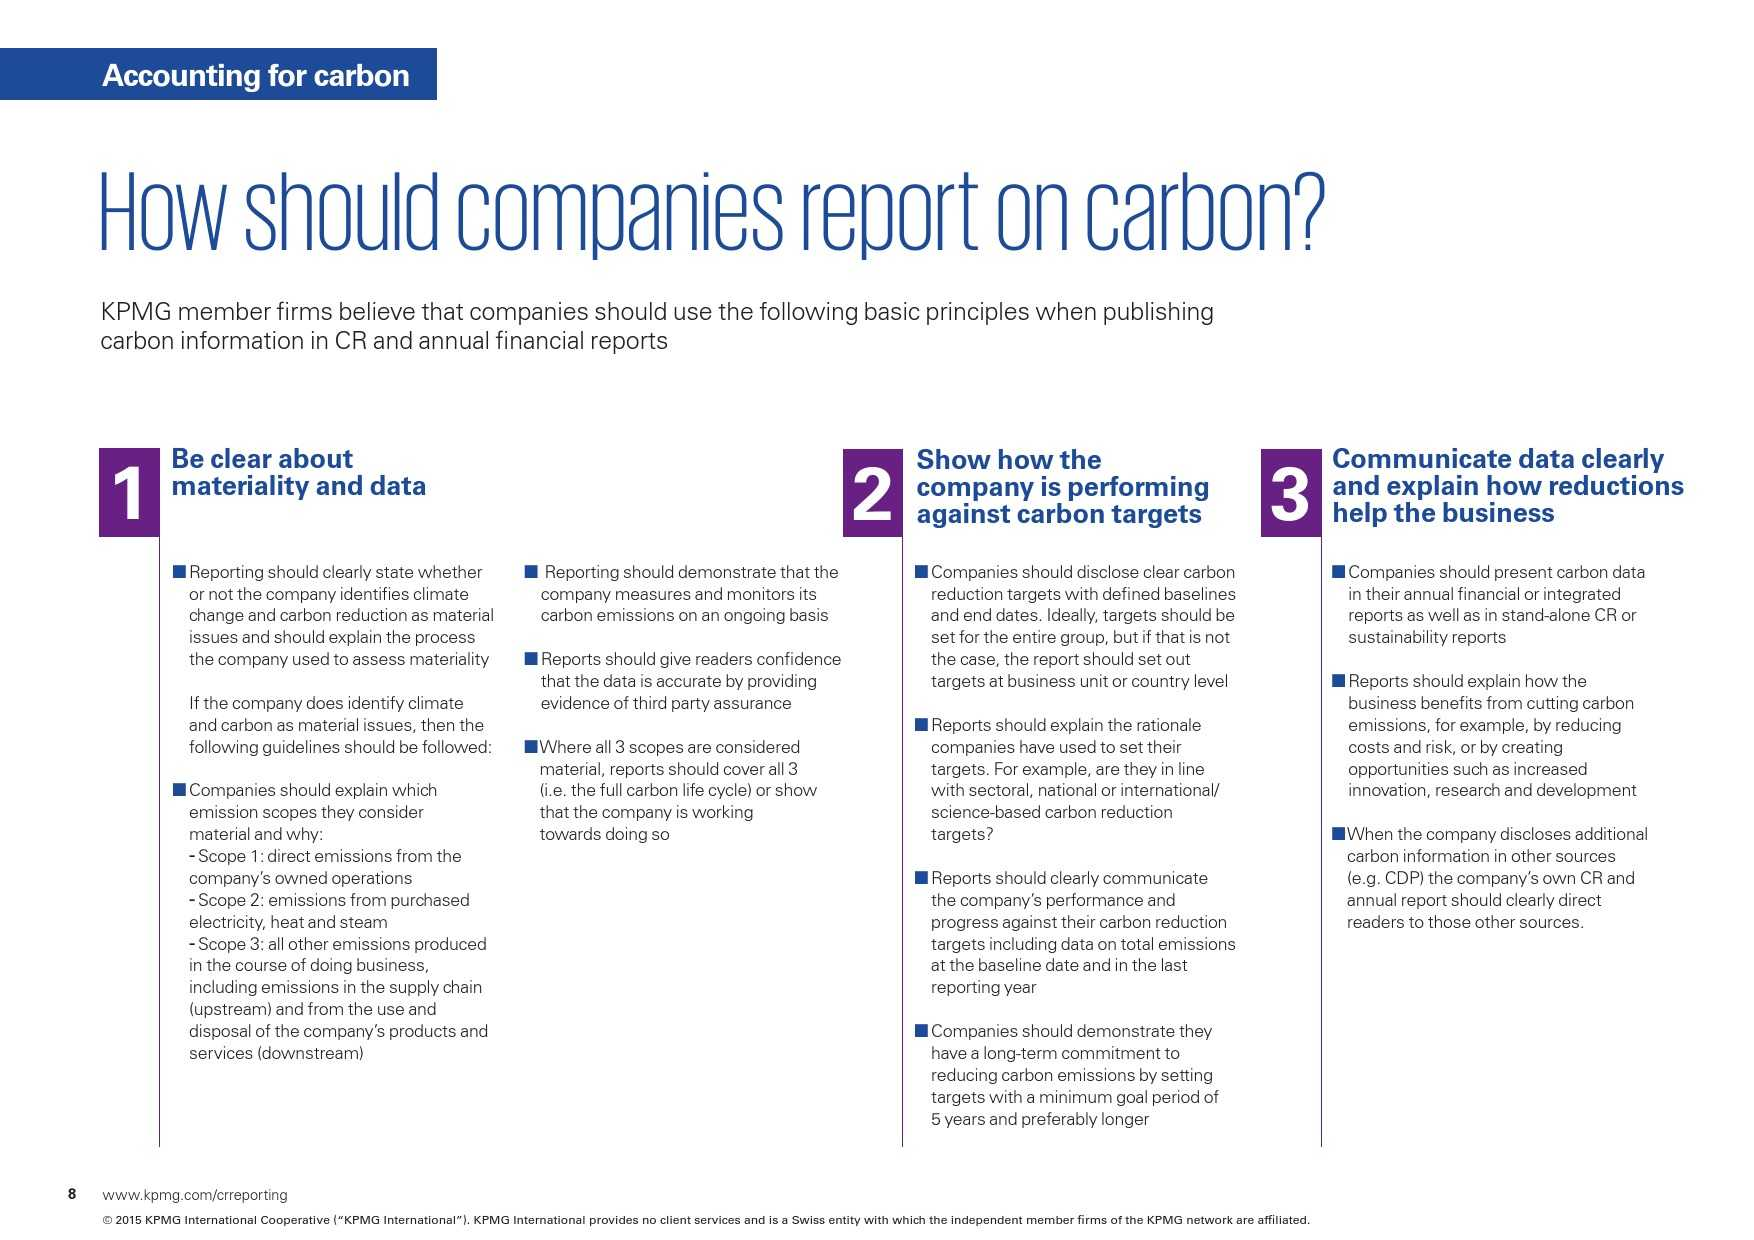 kpmg-international-survey-of-corporate-responsibility-reporting-2015_000008